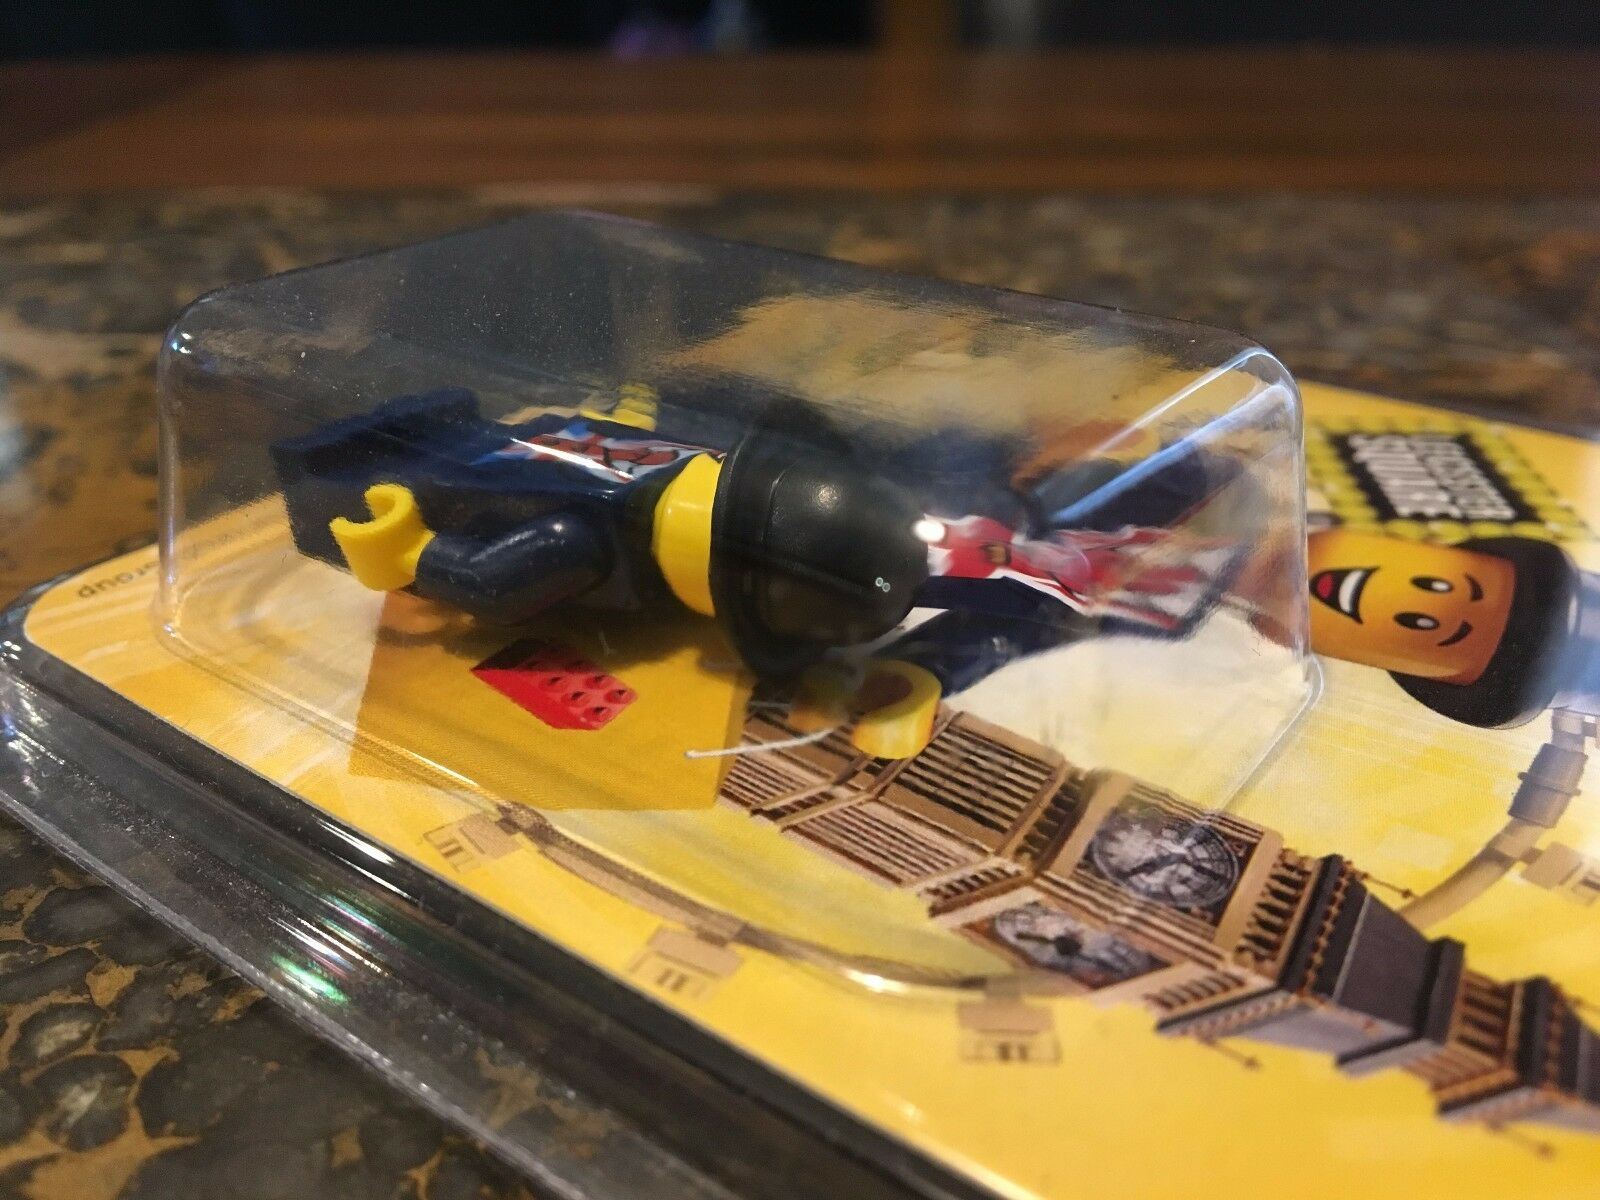 LEGO LESTER LEICESTER SQUARE AFA 9.0 RARER THAN MR. MR. MR. gold 174 275 EXTREMELY RARE  ae8db8